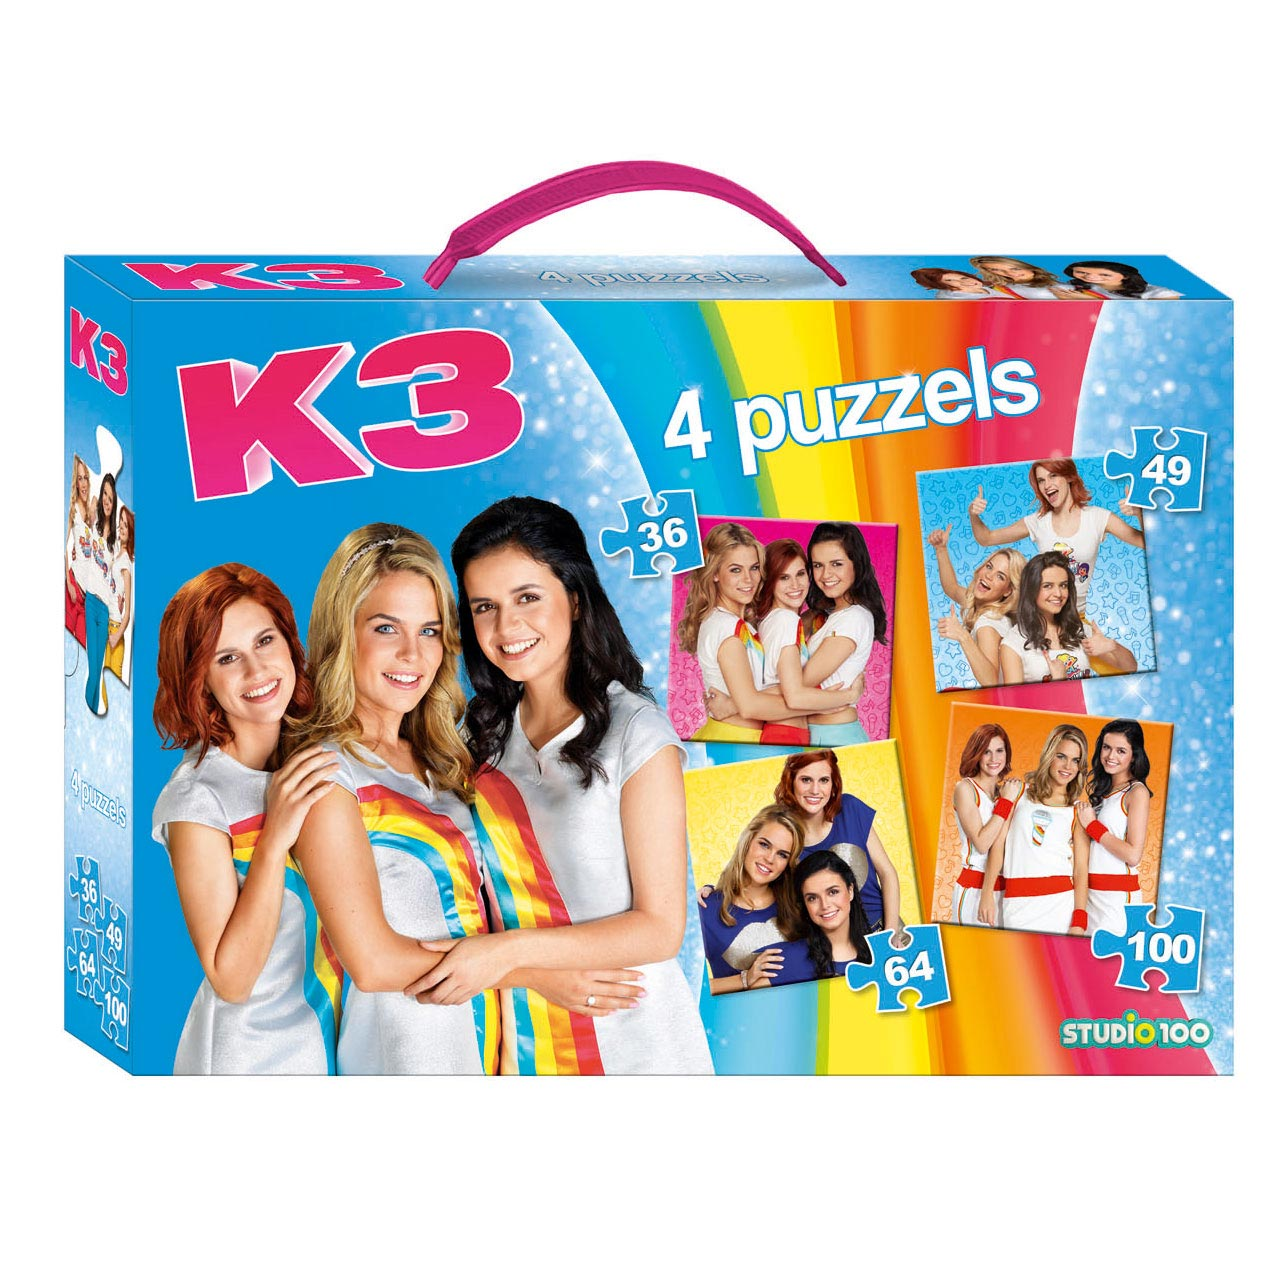 K3 Puzzelbox 4in1